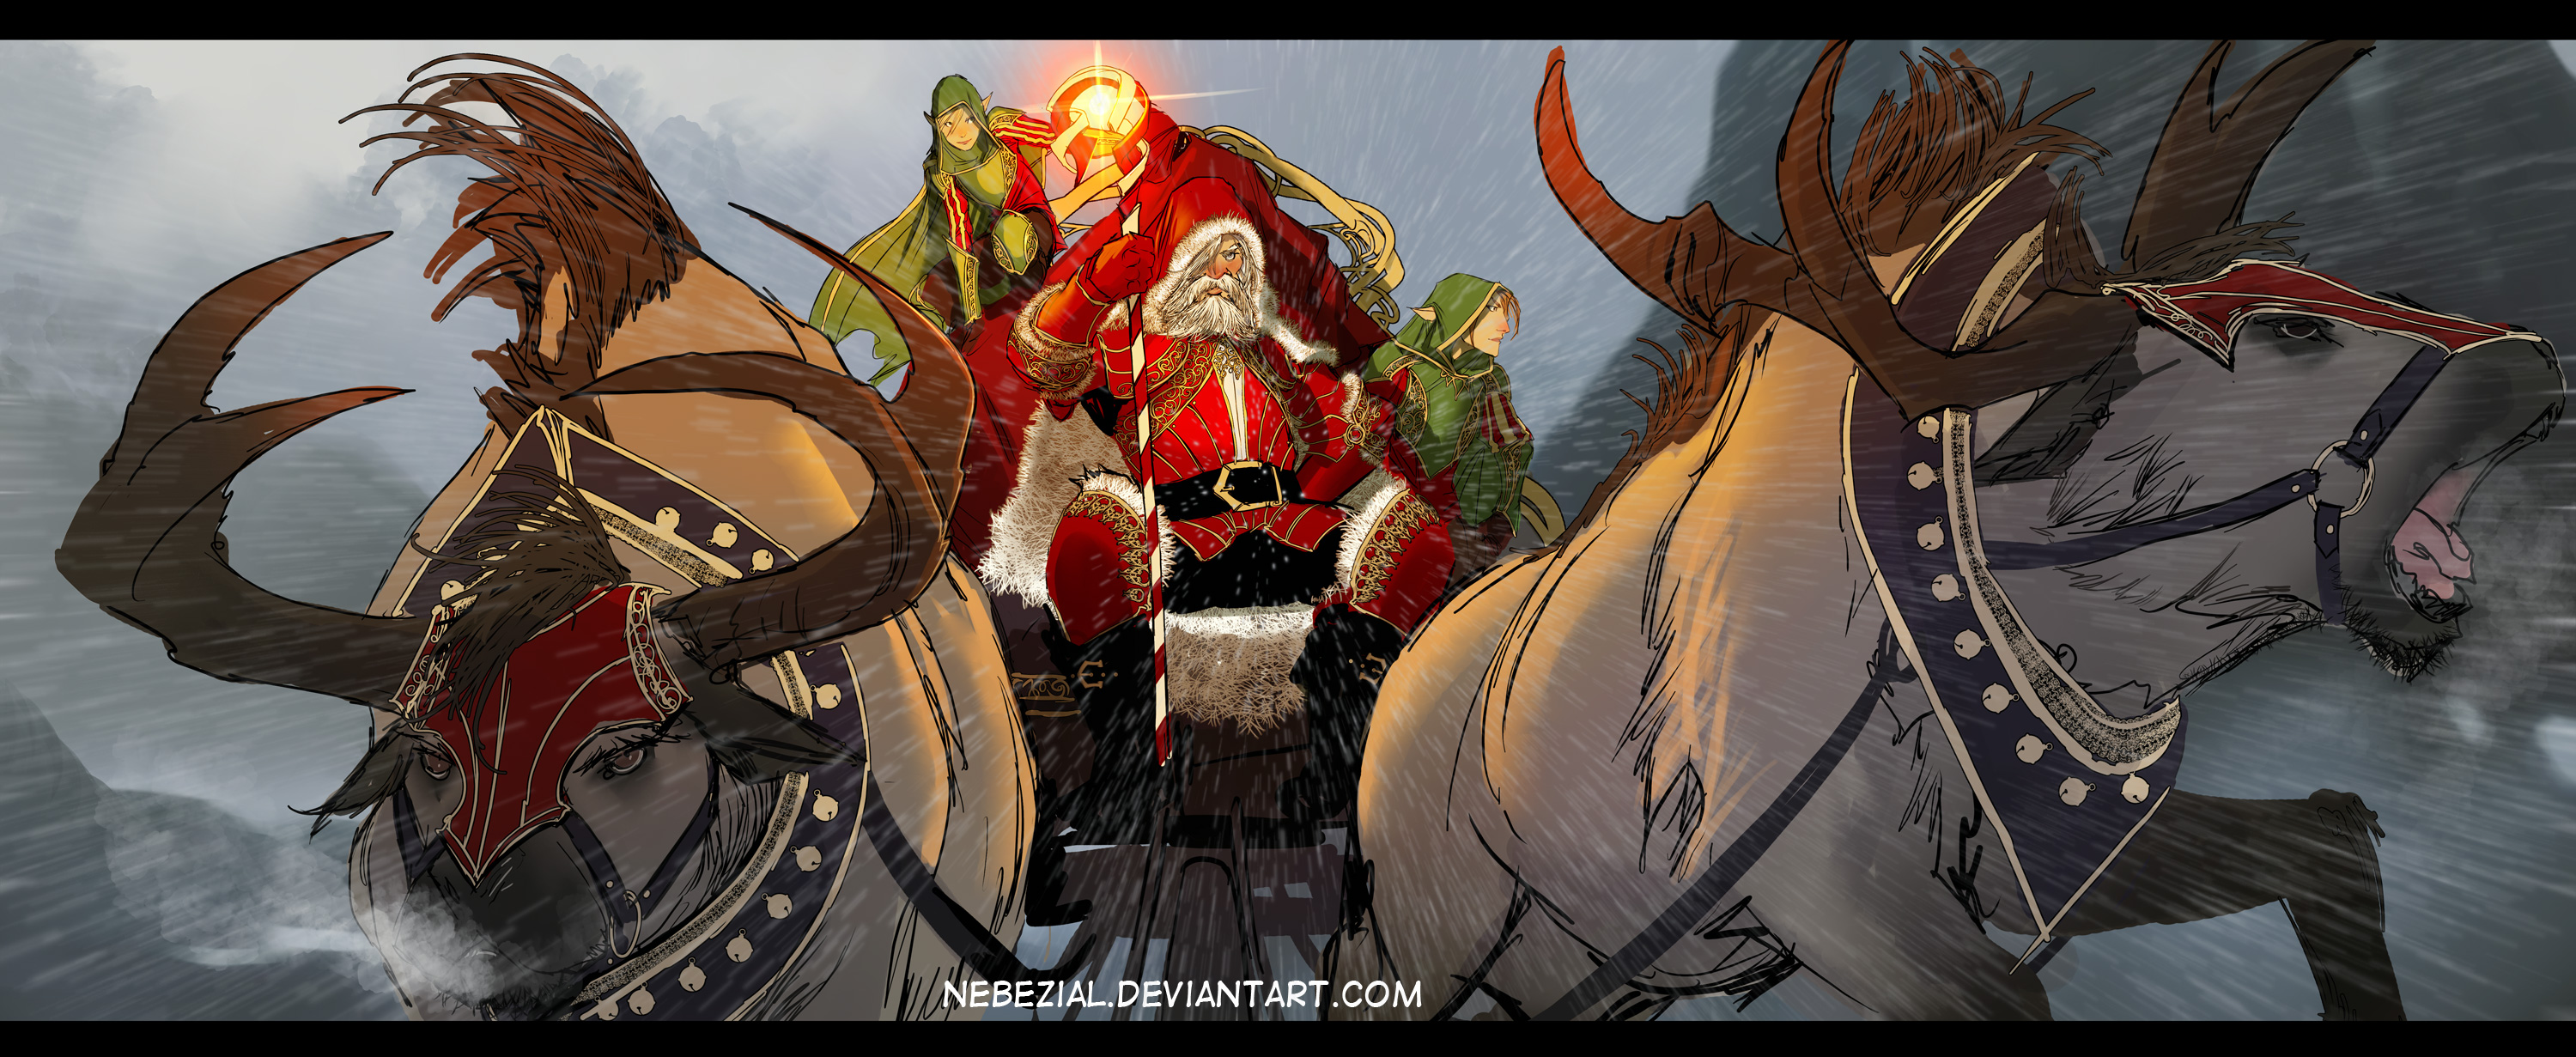 EPIC santa wishes you a FANTASTICAL xmass